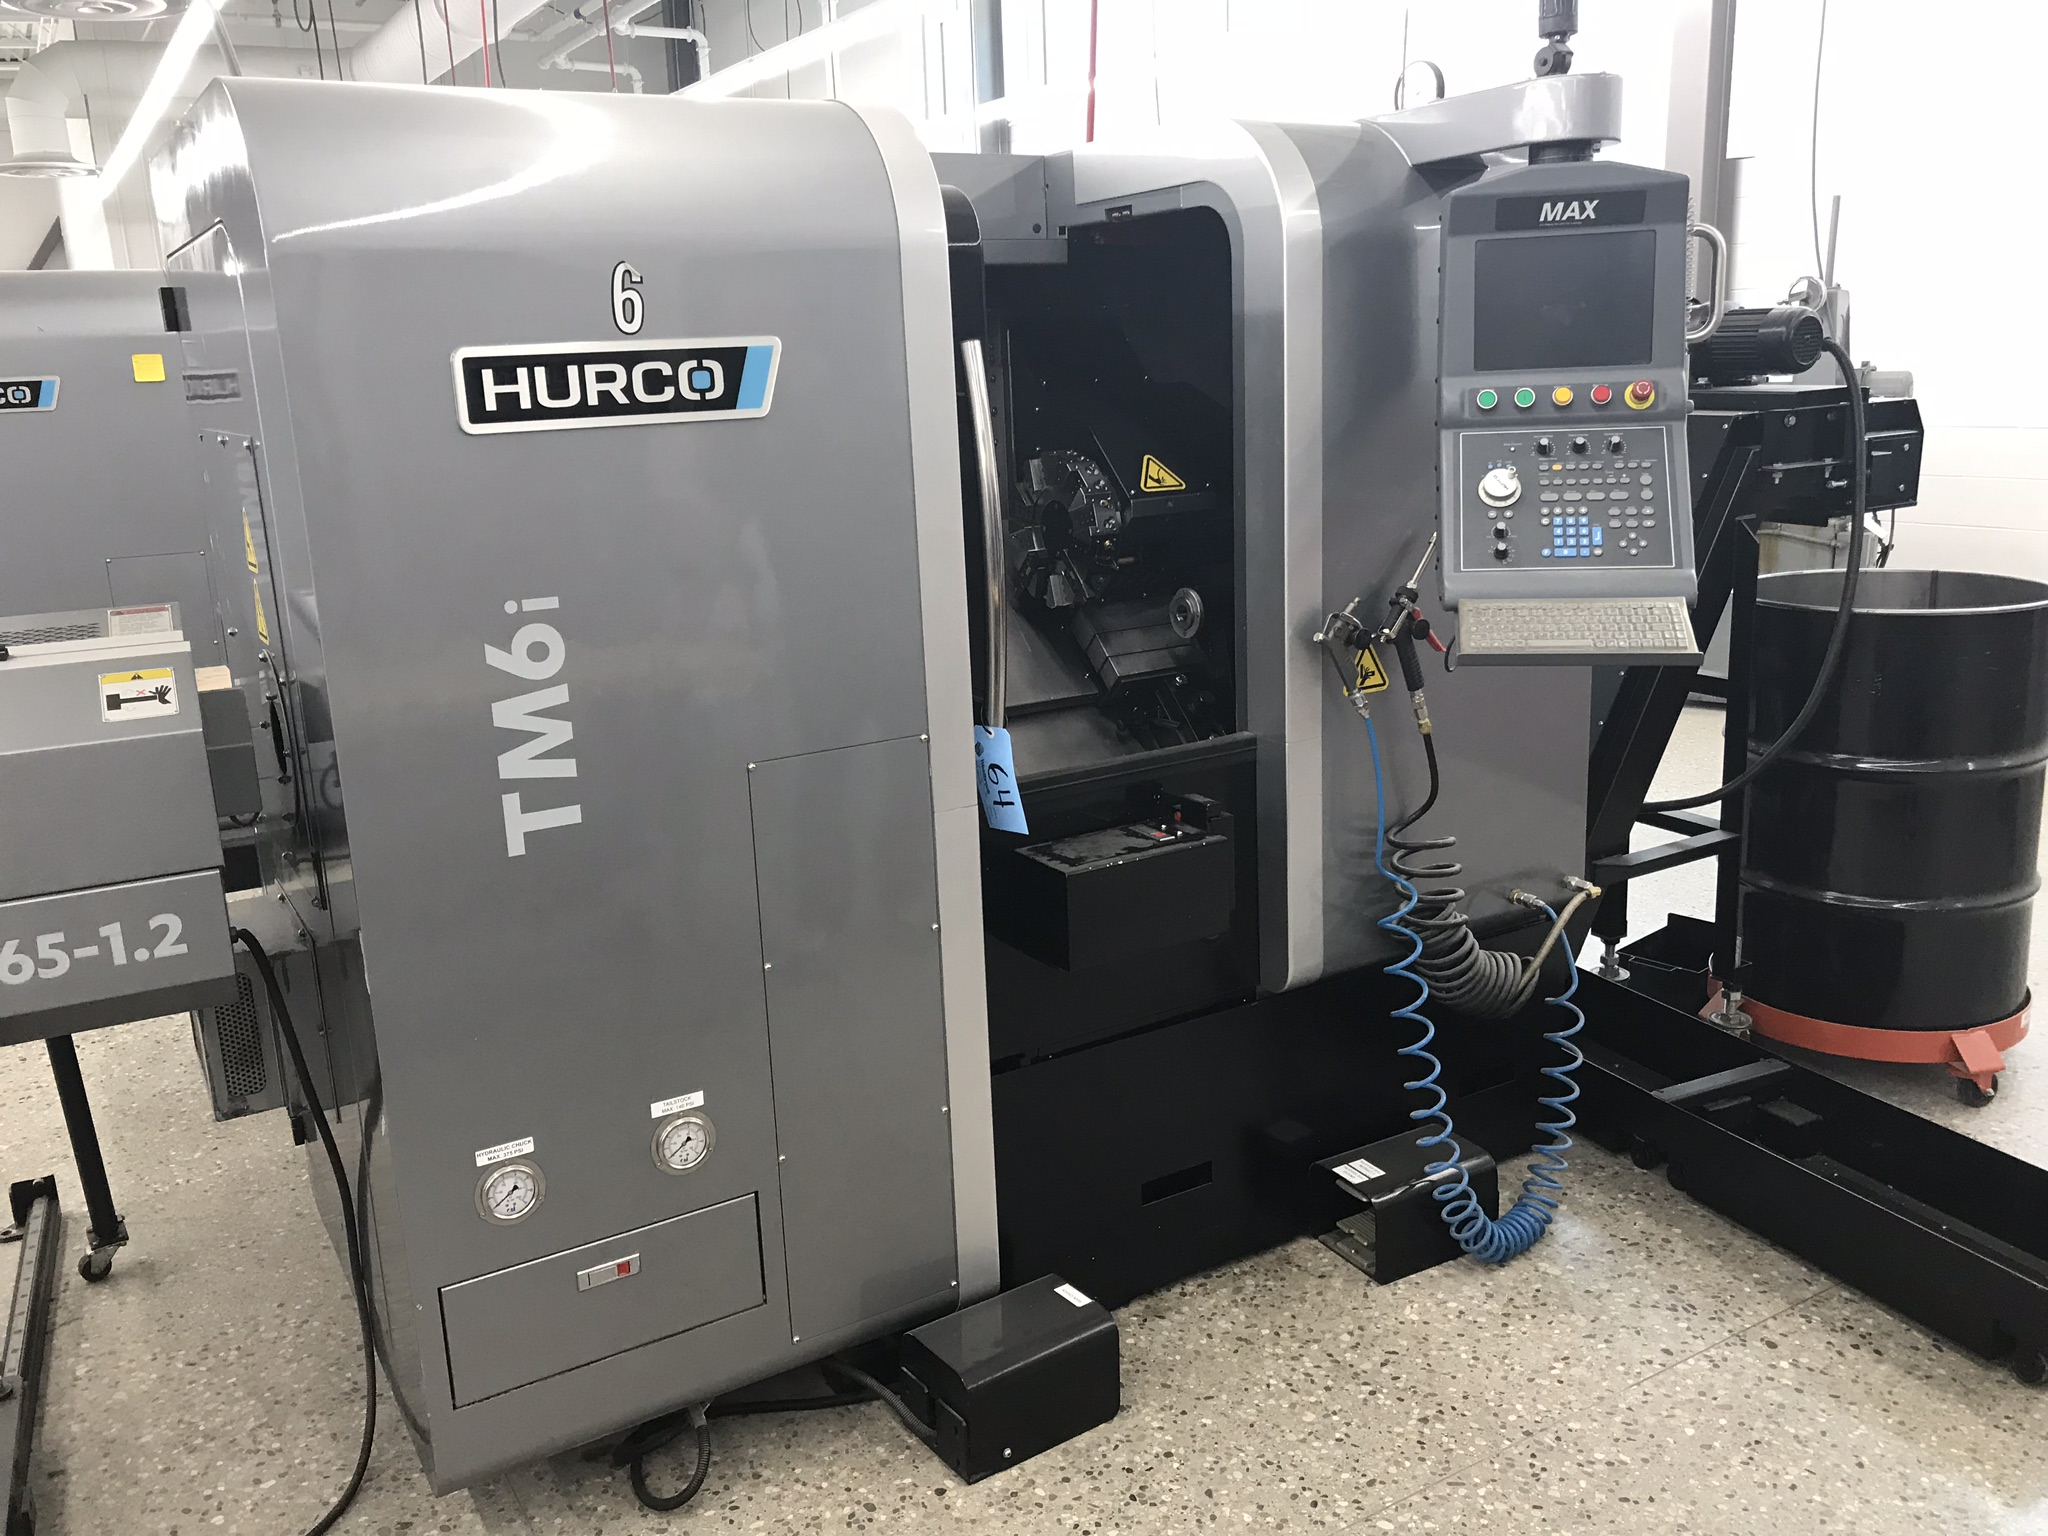 Hurco TM-6i CNC Lathe with HB65-1.2 Barfeed, Rigid Tap, Renishaw Presetter, Chip Conv, 400 Hours! - Image 2 of 16